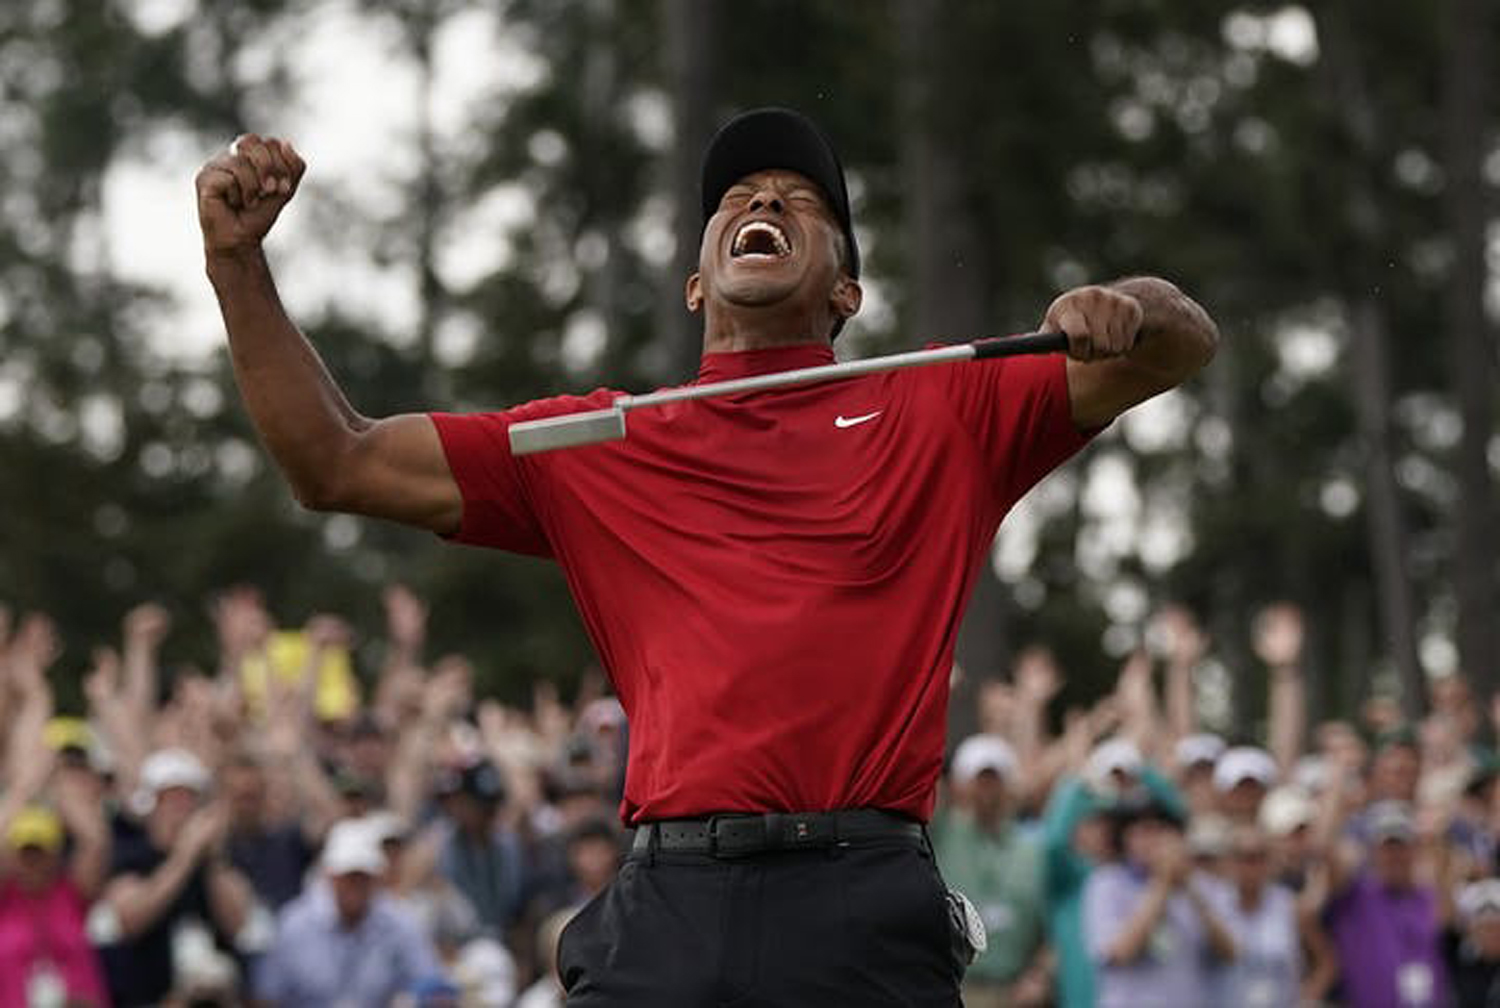 On Sunday Tiger Woods won the annual Masters tournament at Augusta National Golf Club after not having won a major in 11 years.